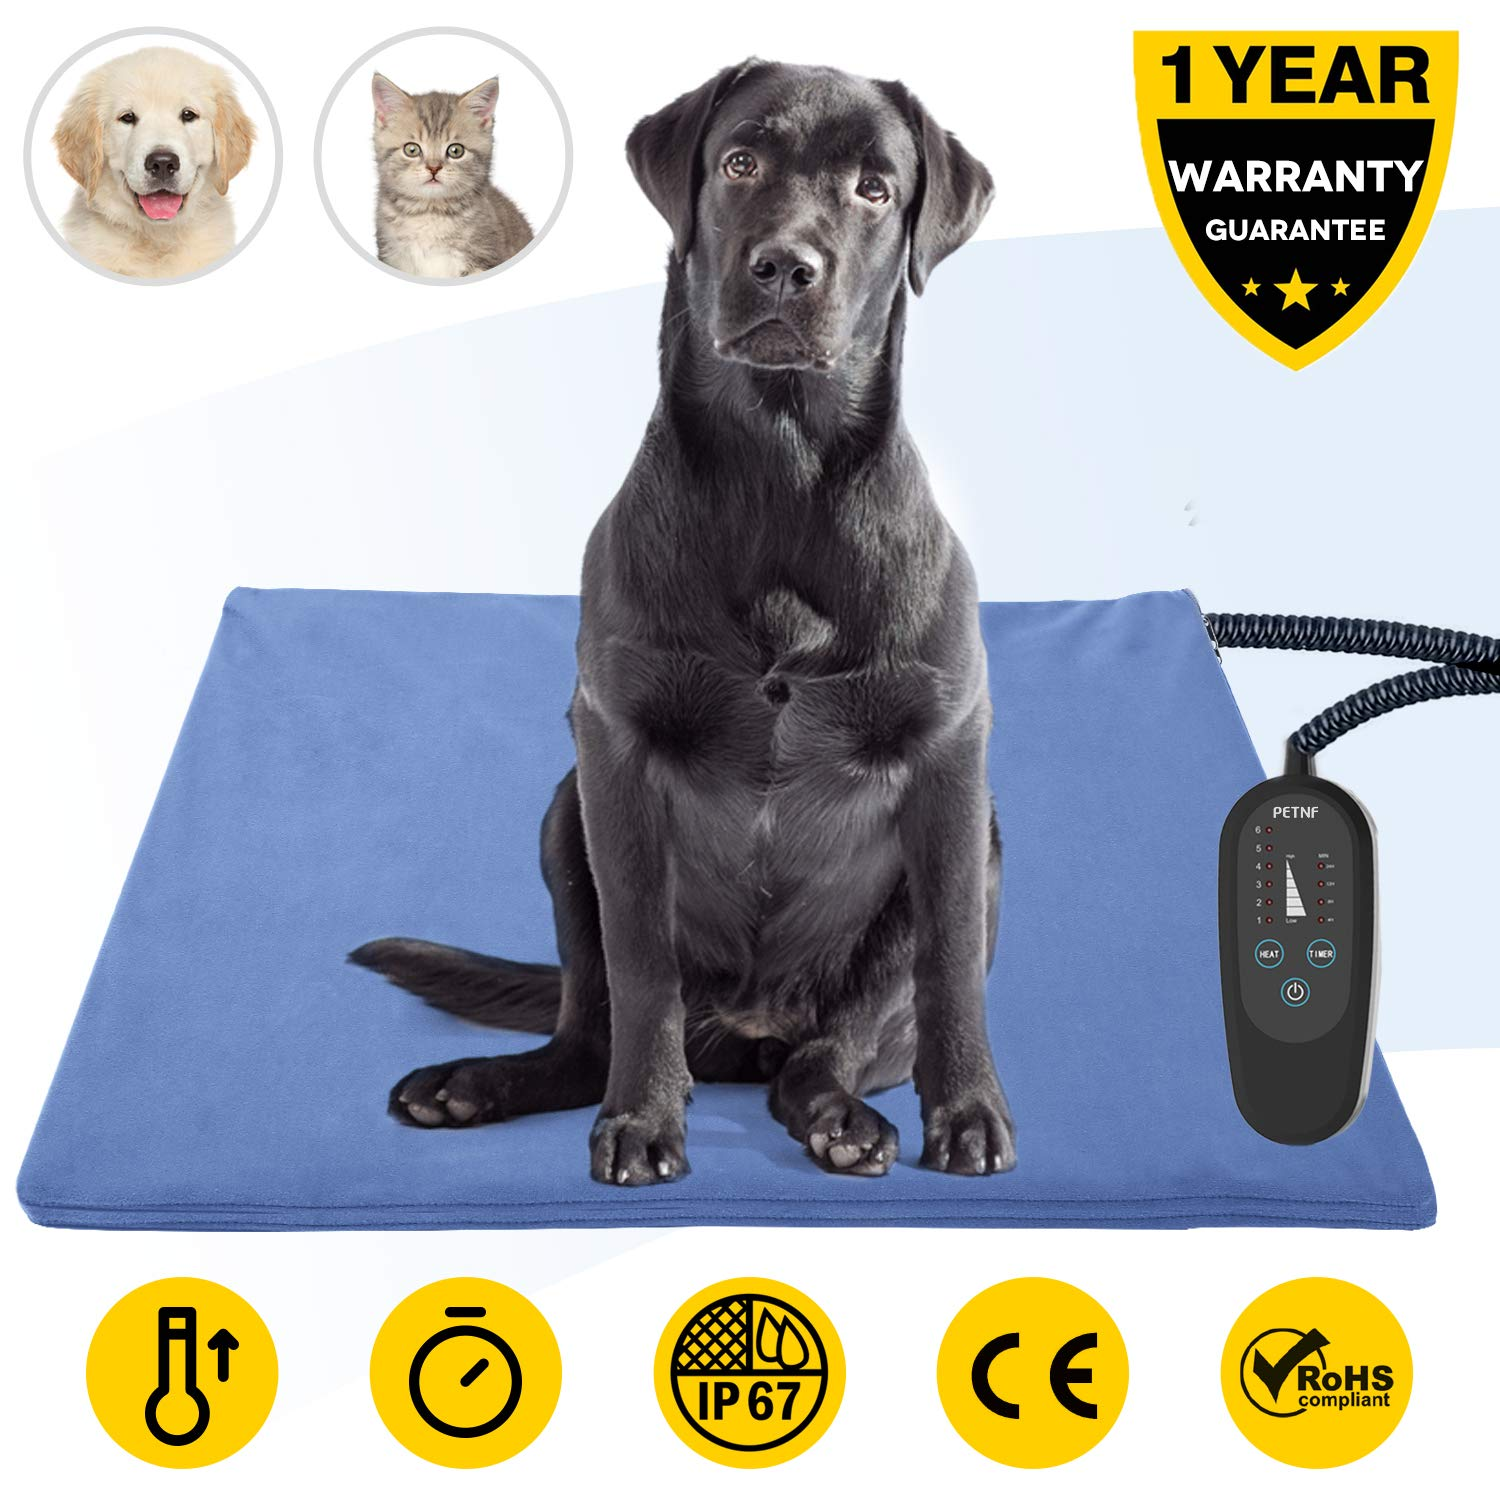 Pet Heating Pad,Dog Electric Heating Pad,29.5''x17.7'' Waterproof Heating Pad for Cats,Heated Mat Bed Safety Heating Indoor Adjustable Warming Mat for Pets with 6.9Ft Length Chew Resistant Steel Cord by petnf